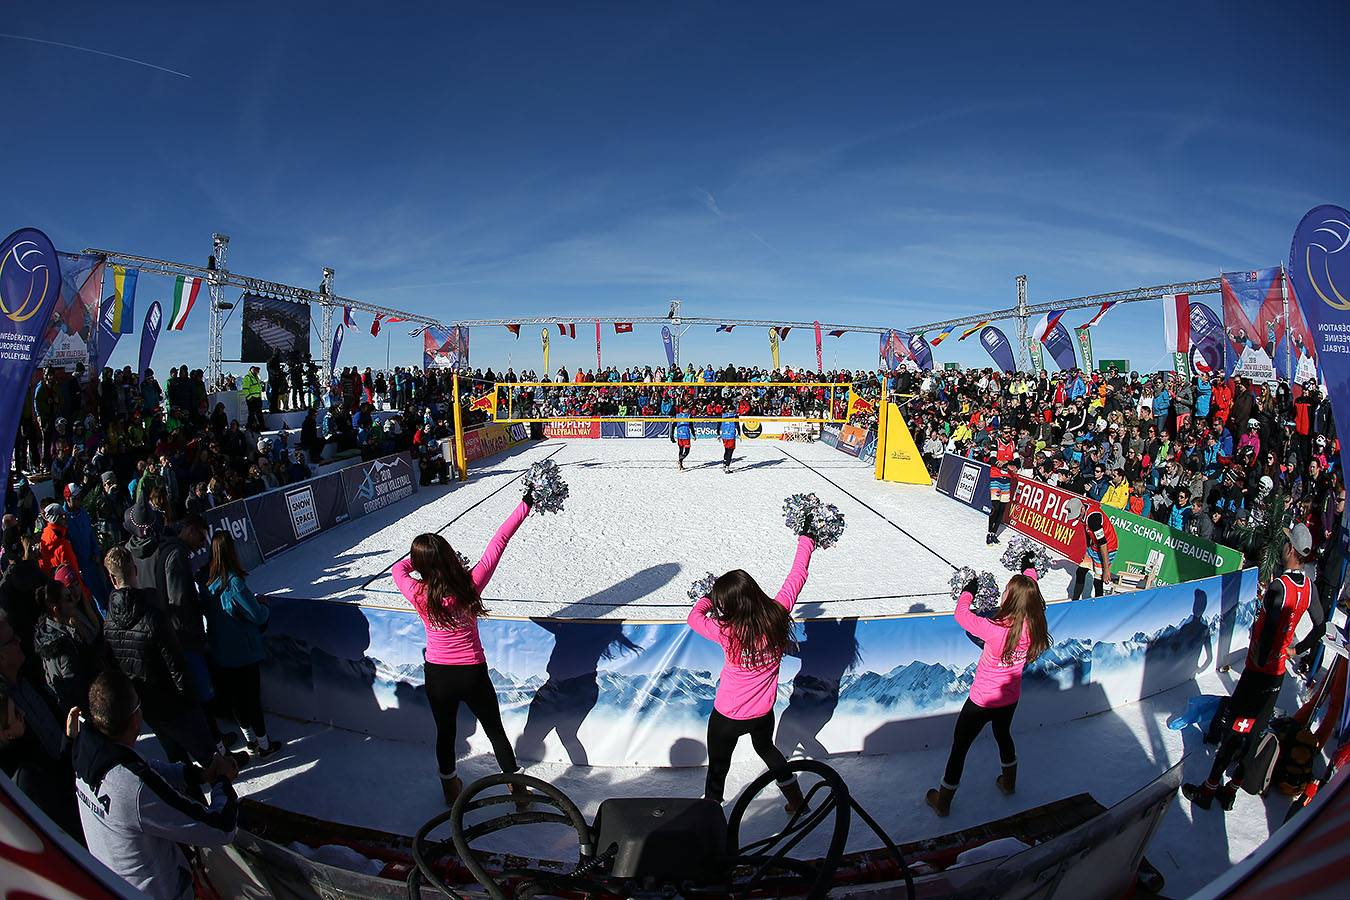 Cev Snow Volleyball European tour 2019: sette tappe in cinque Paesi